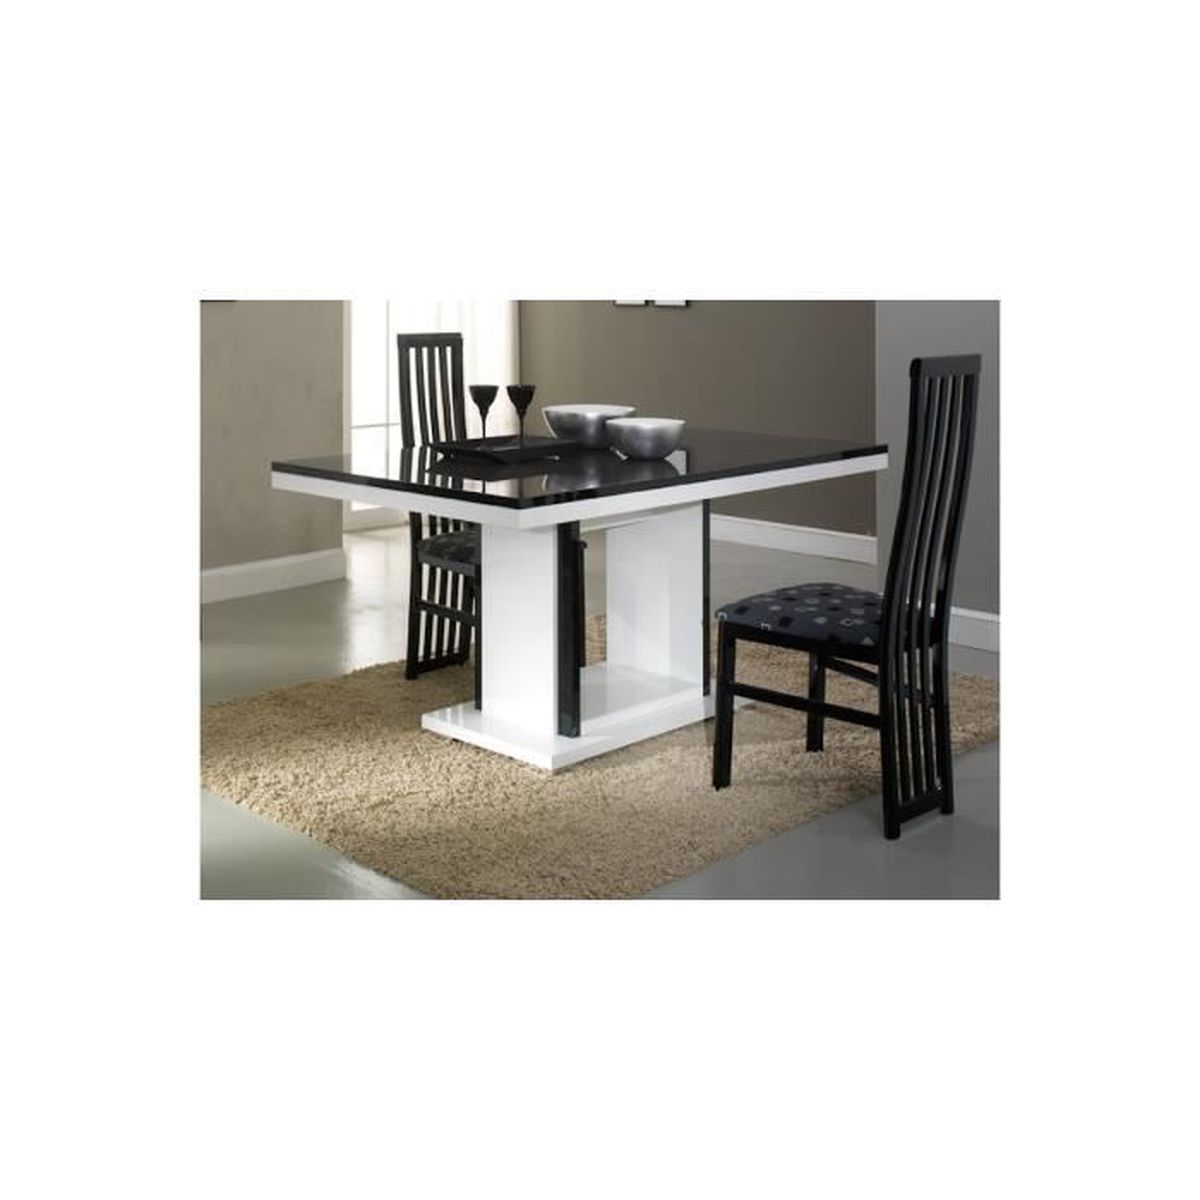 Table rectangulaire pied central achat vente table for Table rectangulaire pas cher